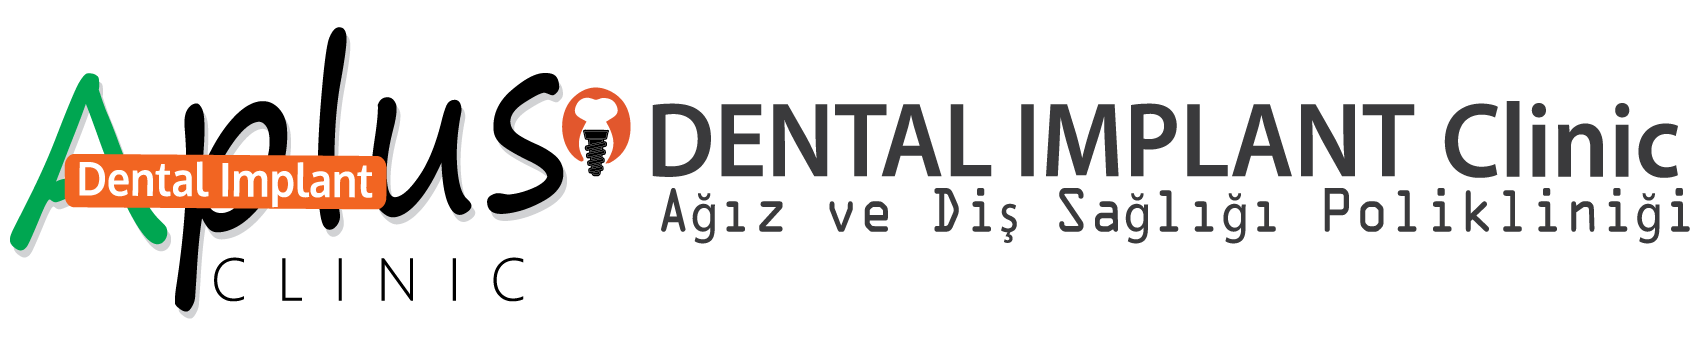 Dental Implant Clinic A Plus